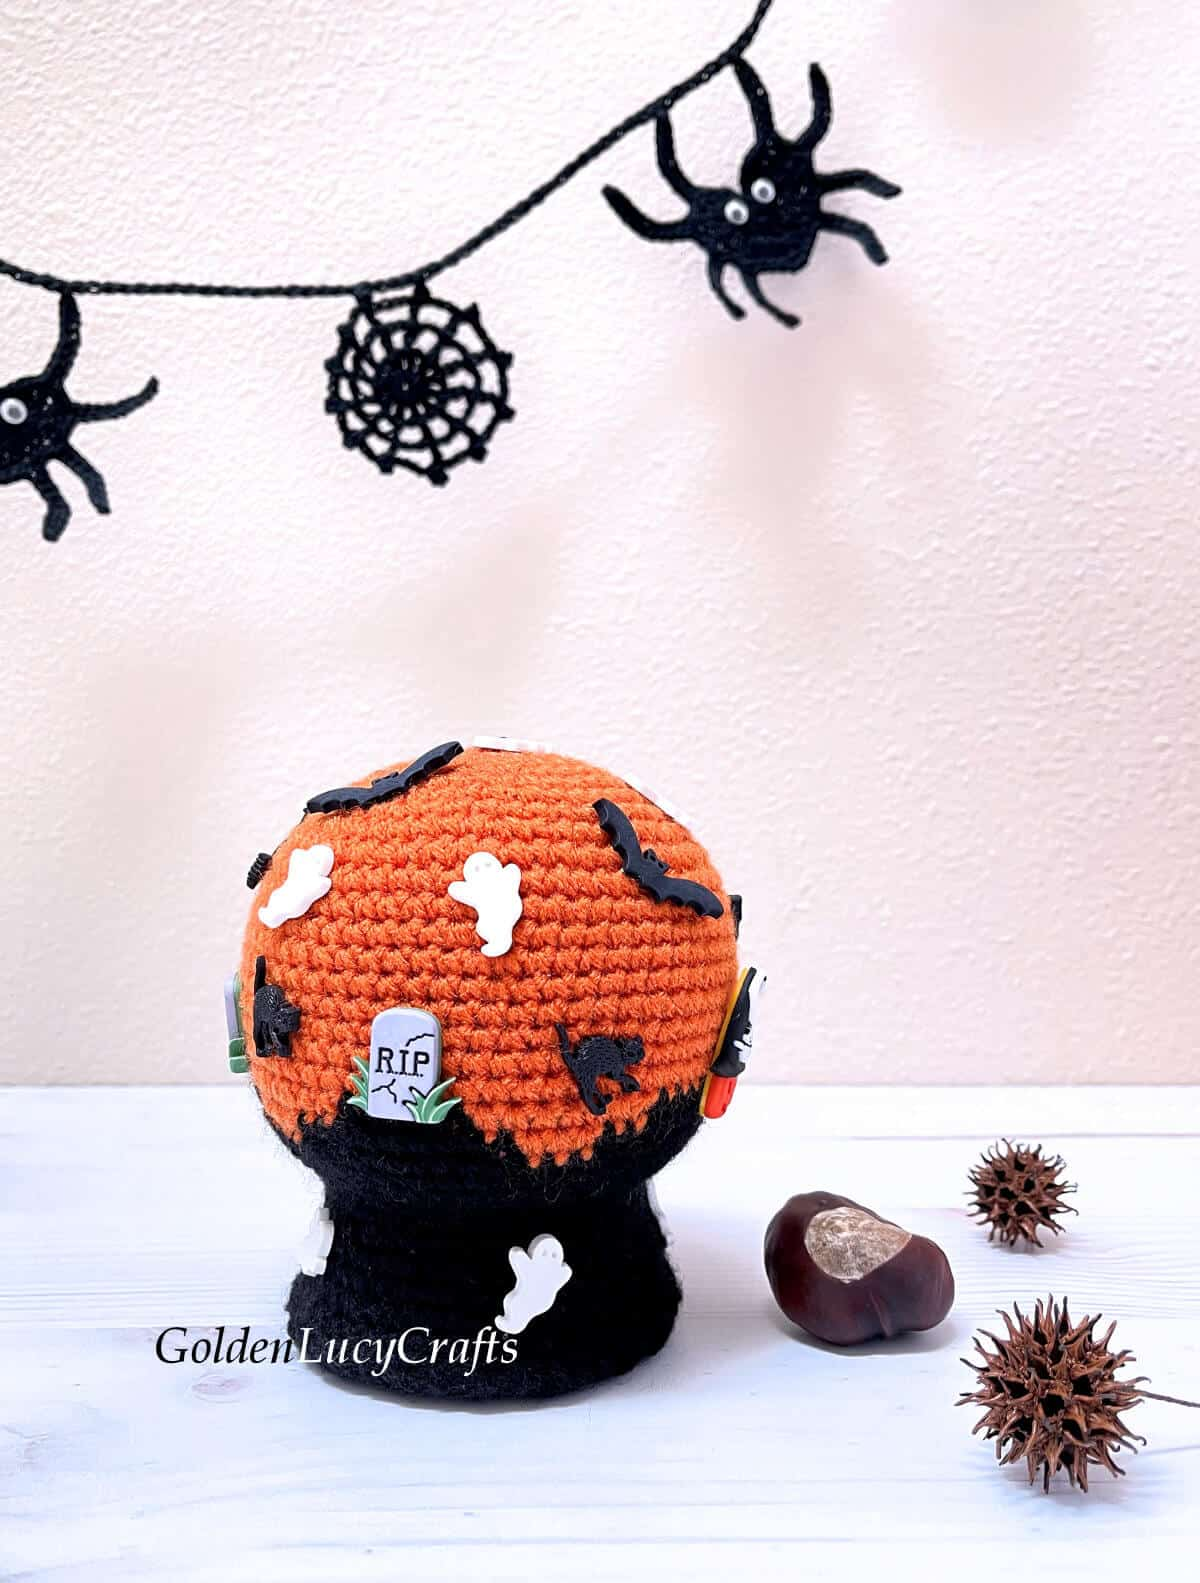 Crocheted Halloween snow globe embellished with craft buttons.